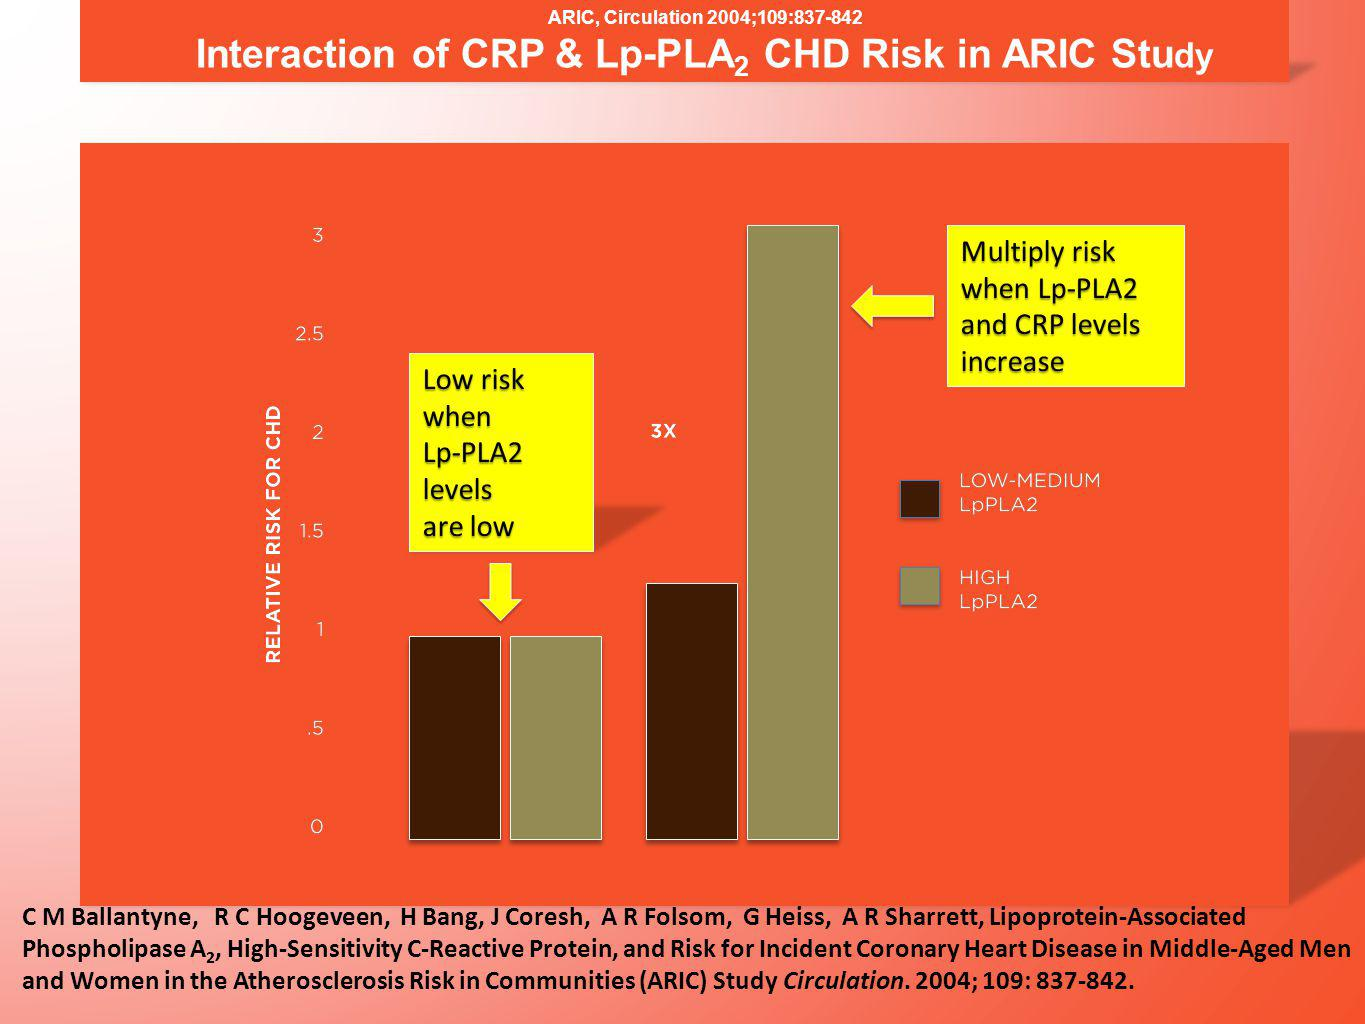 ARIC, Circulation 2004;109:837-842 Interaction of CRP & Lp-PLA 2 CHD Risk in ARIC Stu dy C M Ballantyne, R C Hoogeveen, H Bang, J Coresh, A R Folsom, G Heiss, A R Sharrett, Lipoprotein-Associated Phospholipase A 2, High-Sensitivity C-Reactive Protein, and Risk for Incident Coronary Heart Disease in Middle-Aged Men and Women in the Atherosclerosis Risk in Communities (ARIC) Study Circulation.